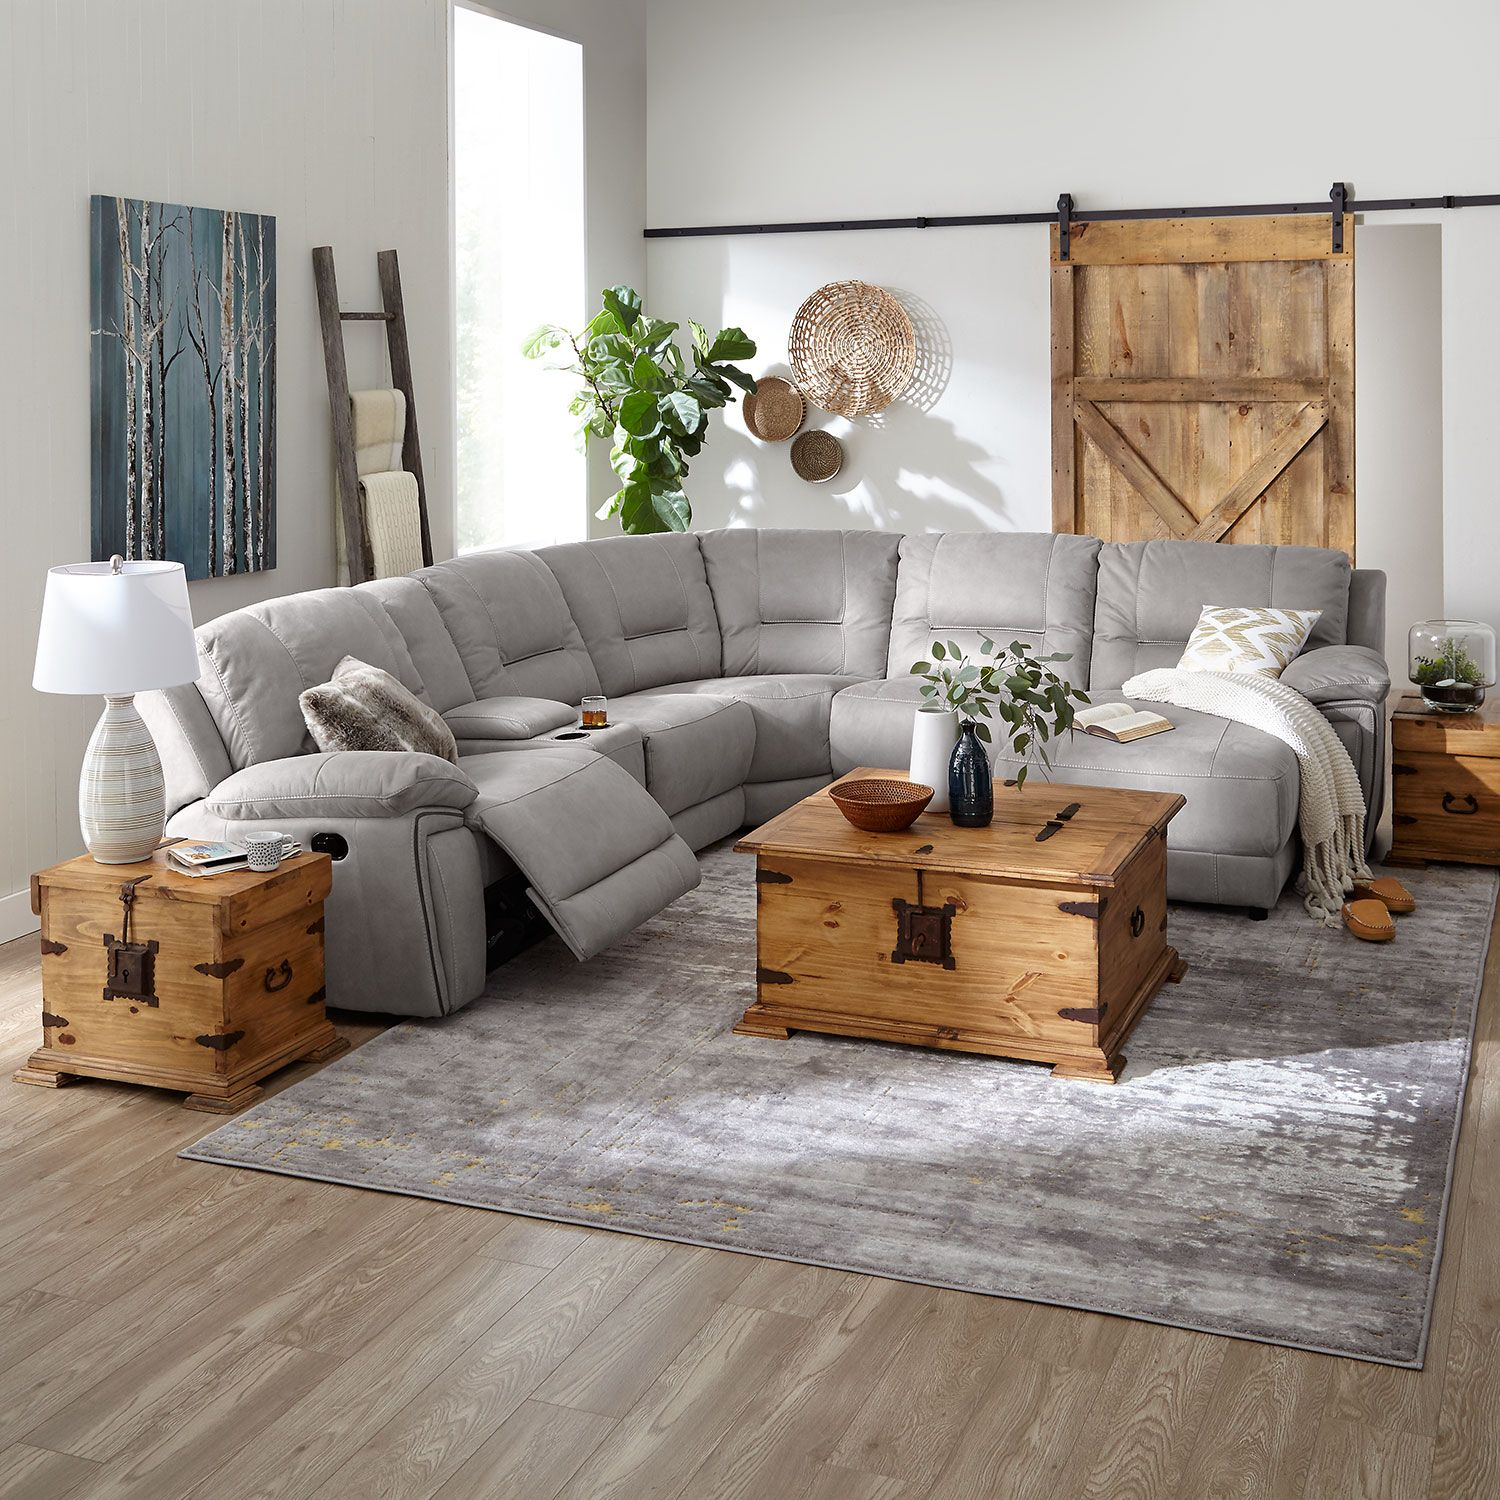 The easy to coordinate grey colour of the pasadena sectional sofa offers a cool modern neutral for your living room upholstered in soft as suede